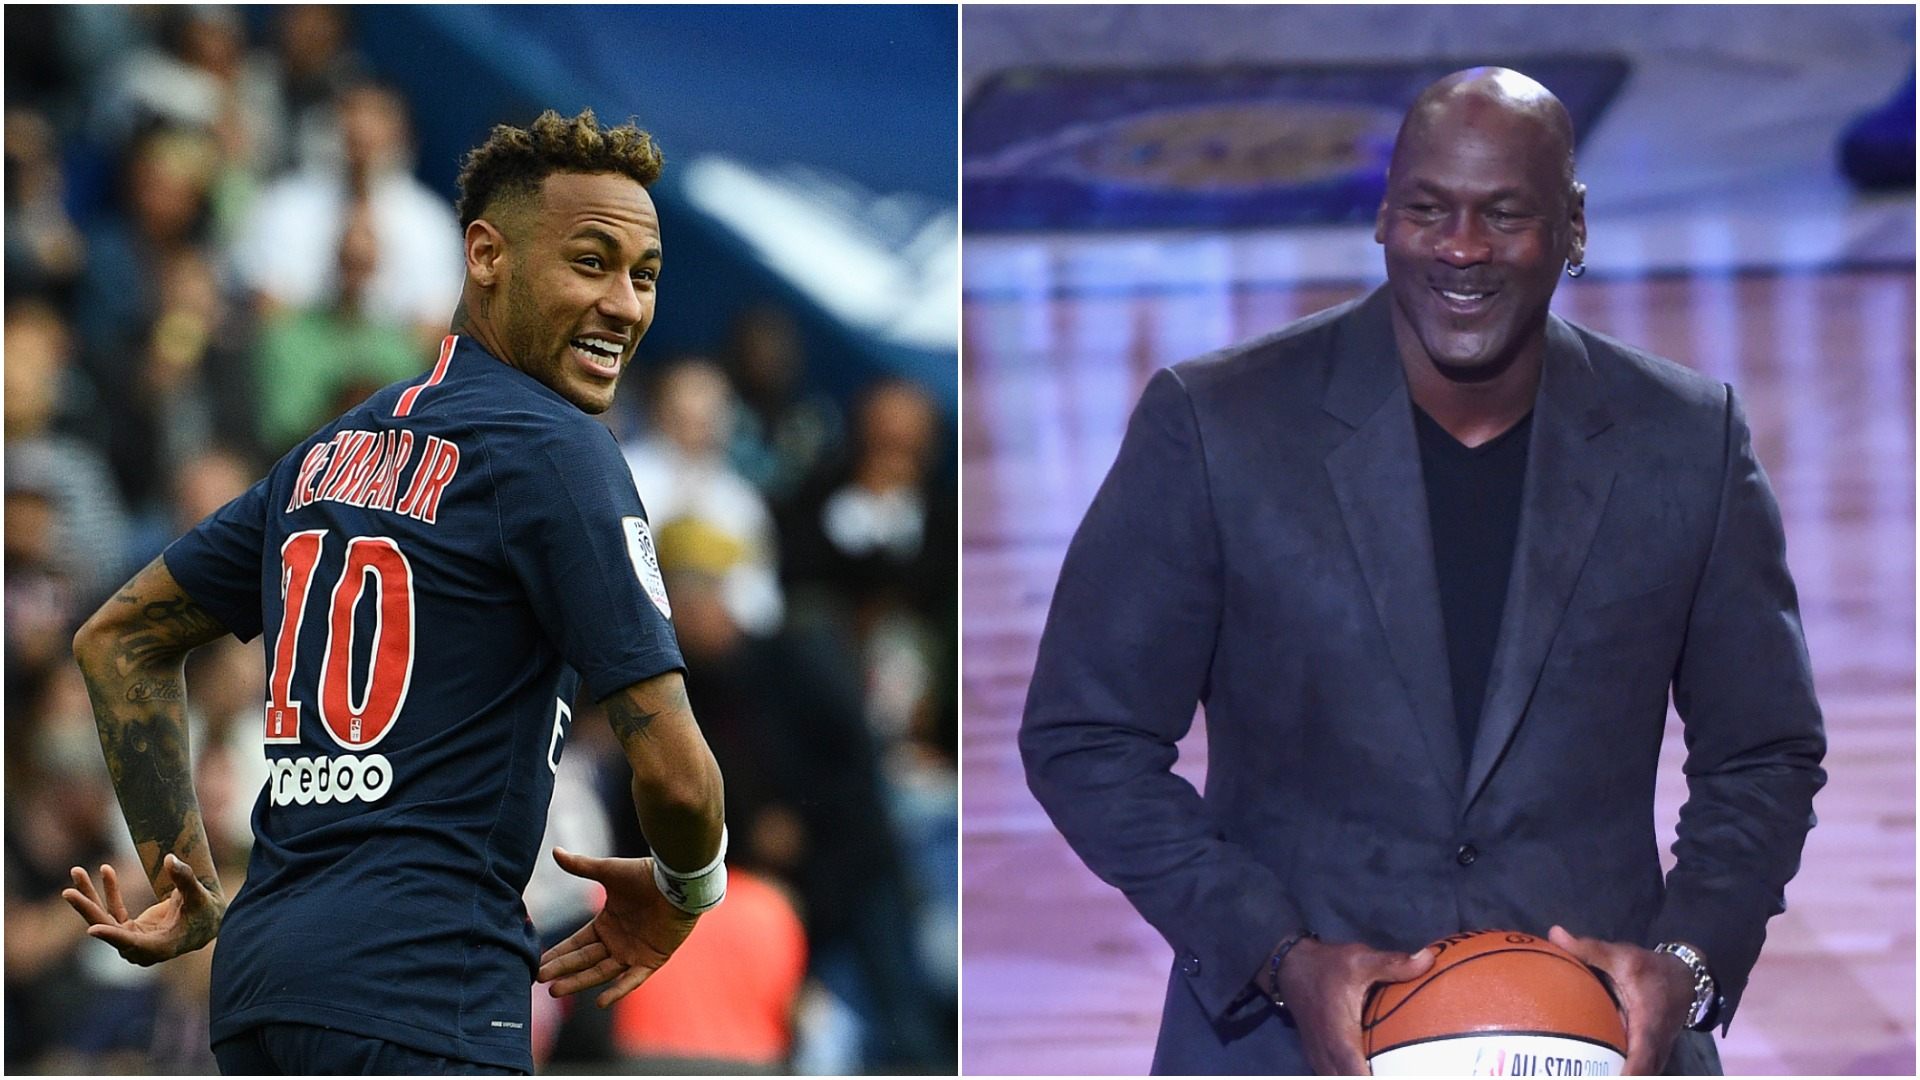 PSG Team Up With Jordan For Champions League